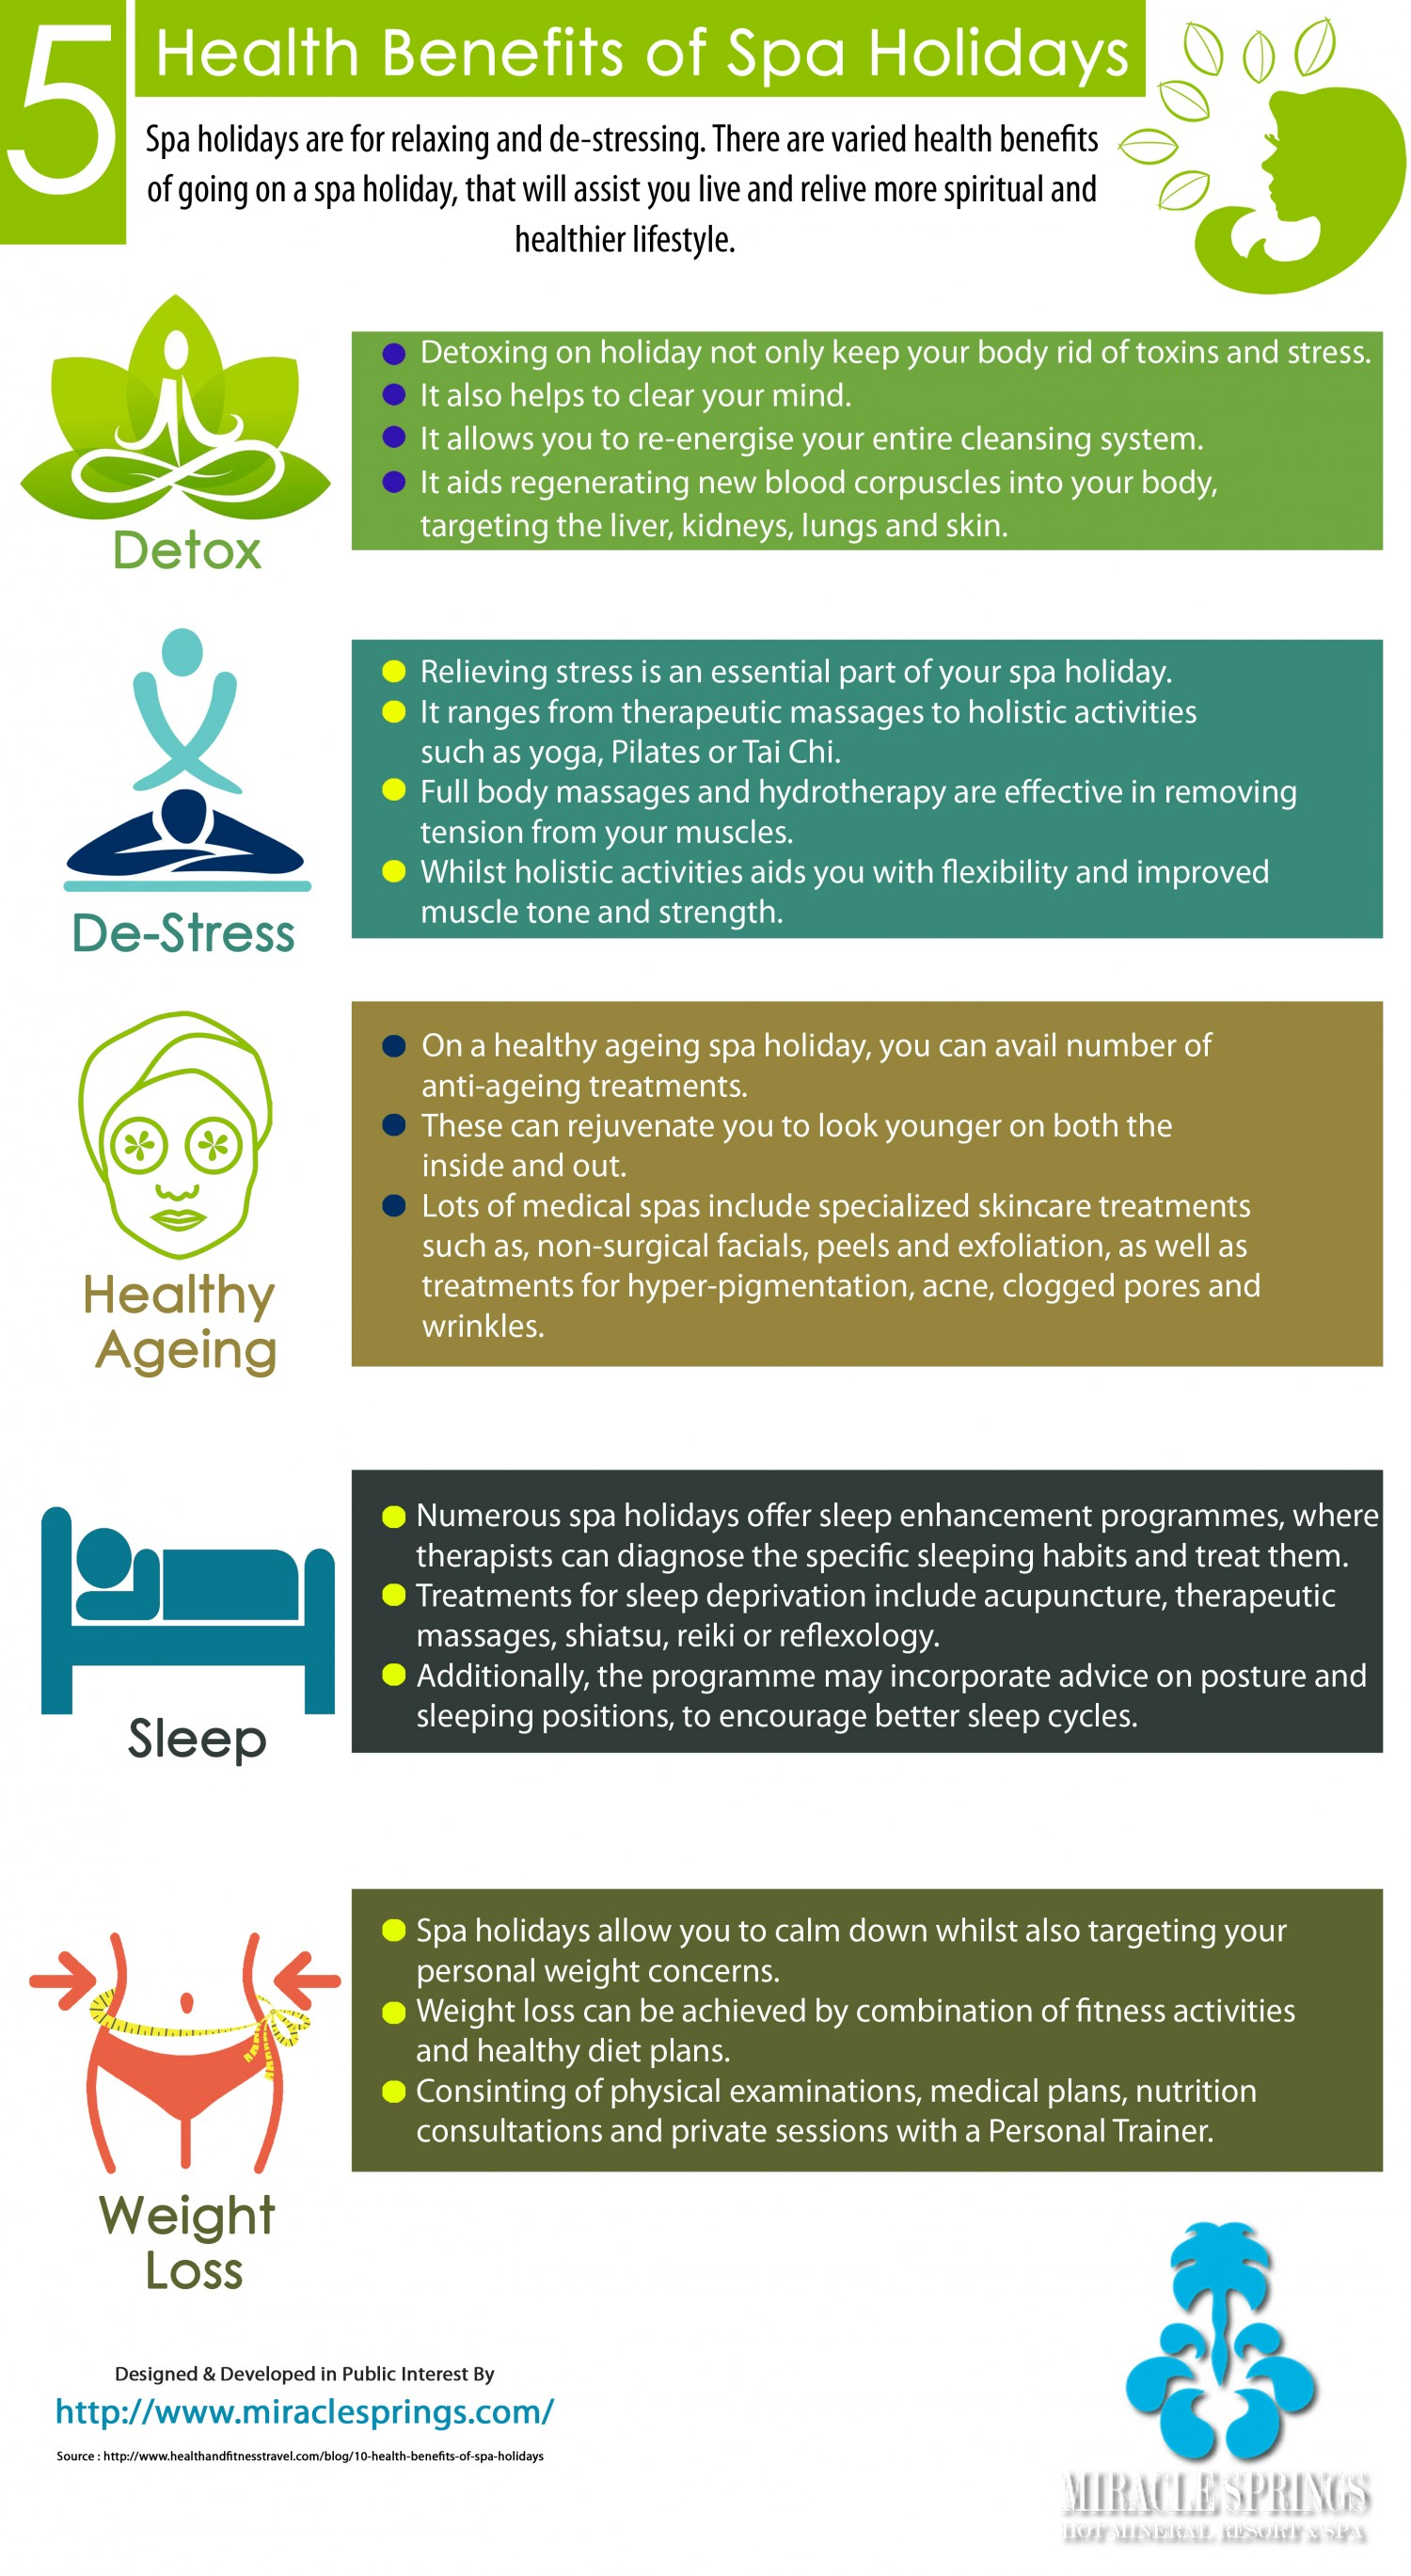 Health Benefits of Spa Holidays